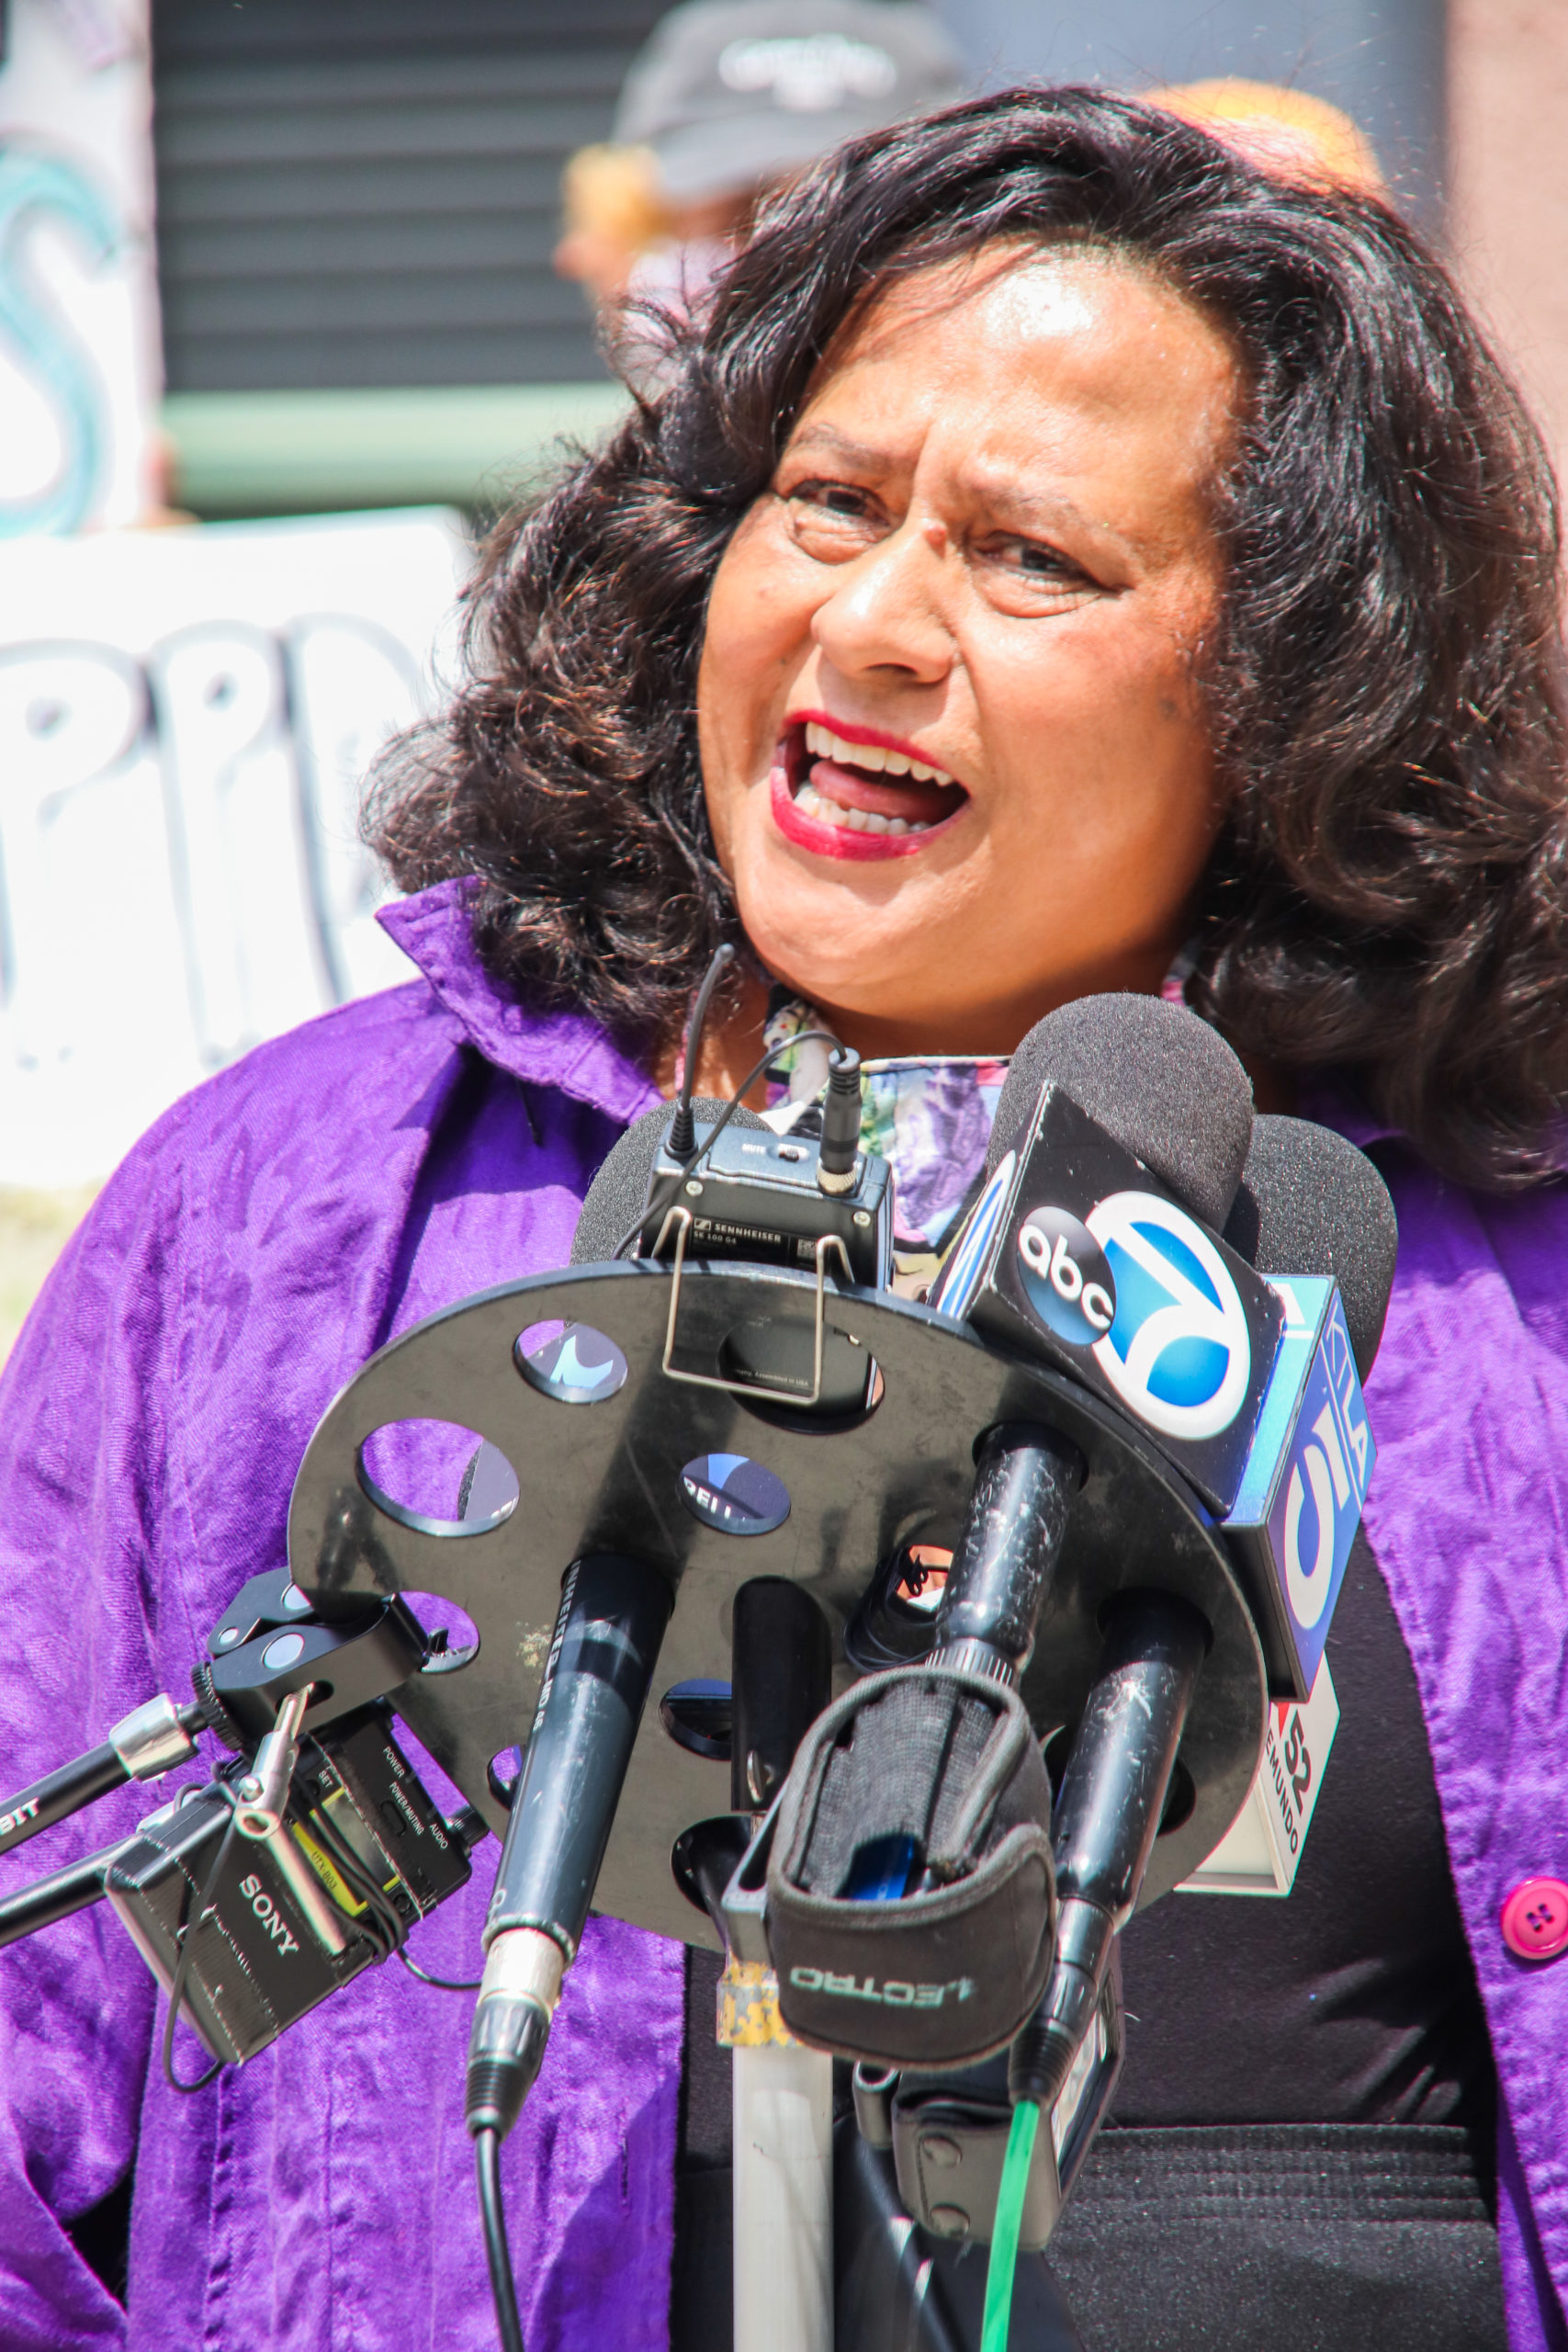 south-pasadena-news-06-24-2020-vanessa-marquez-police-shooting-wrongful-death-lawsuit-city-hall-30